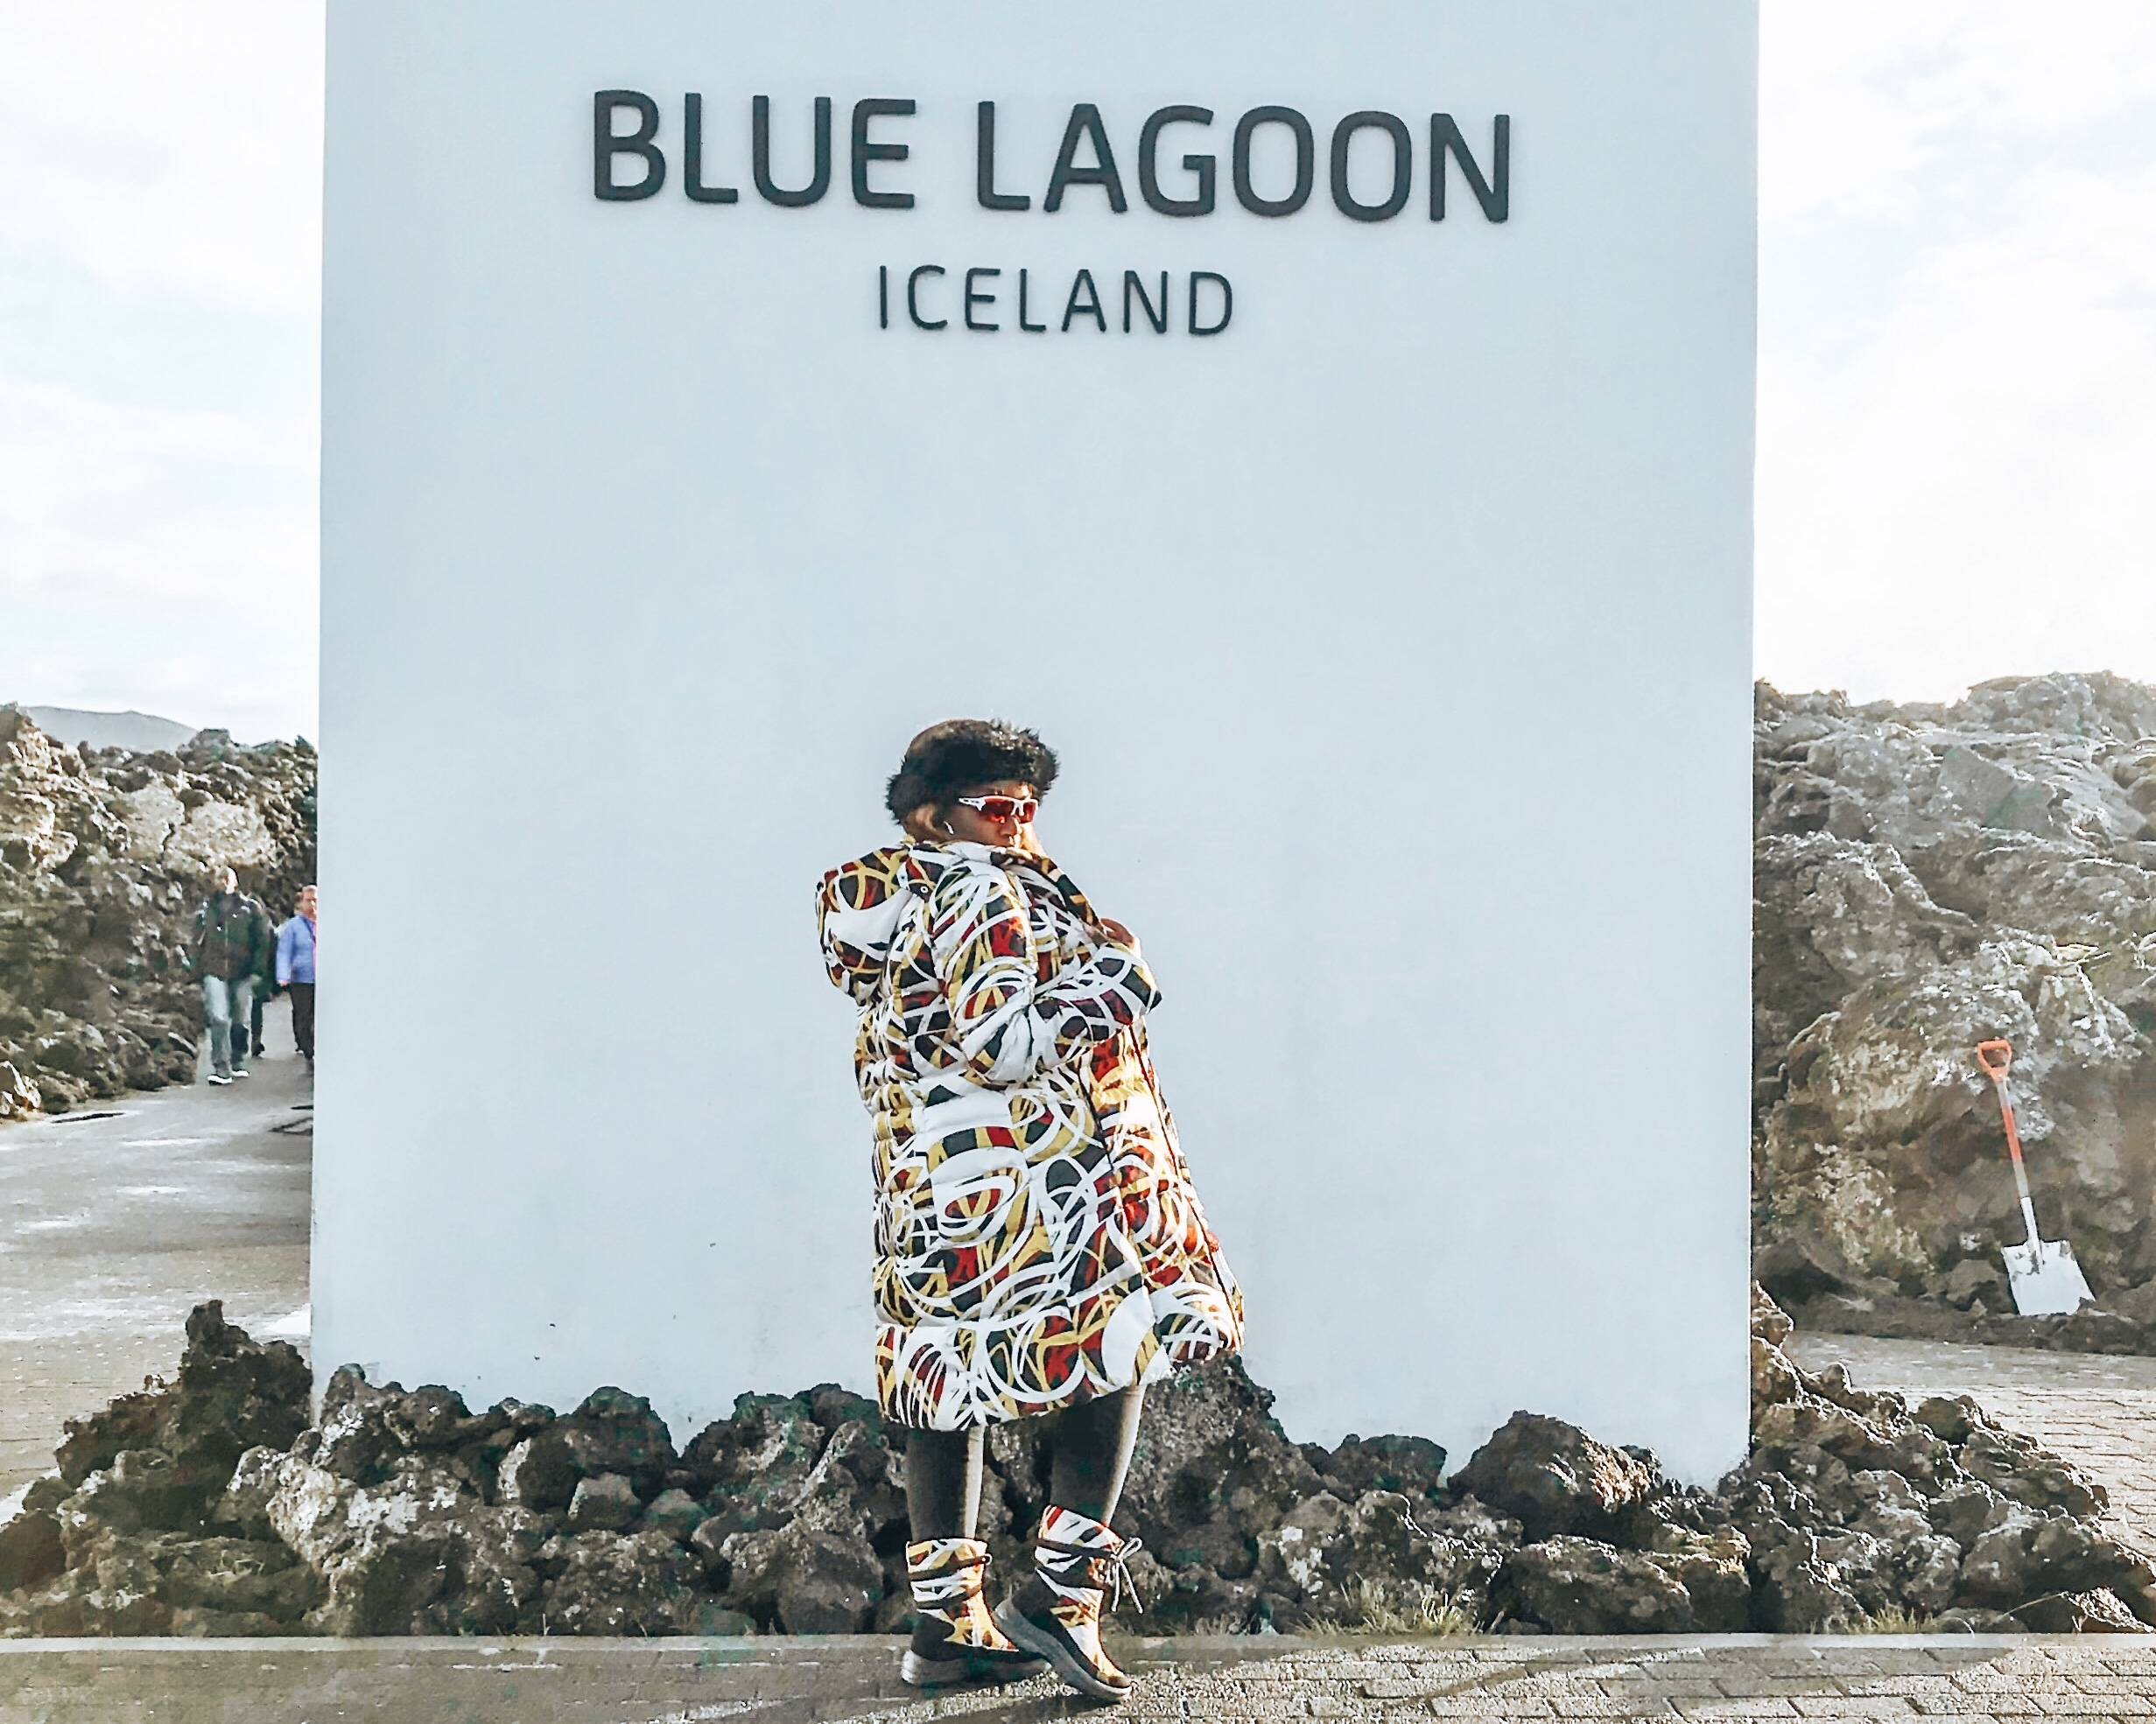 Blue Lagoon in Iceland, the safest country in the world